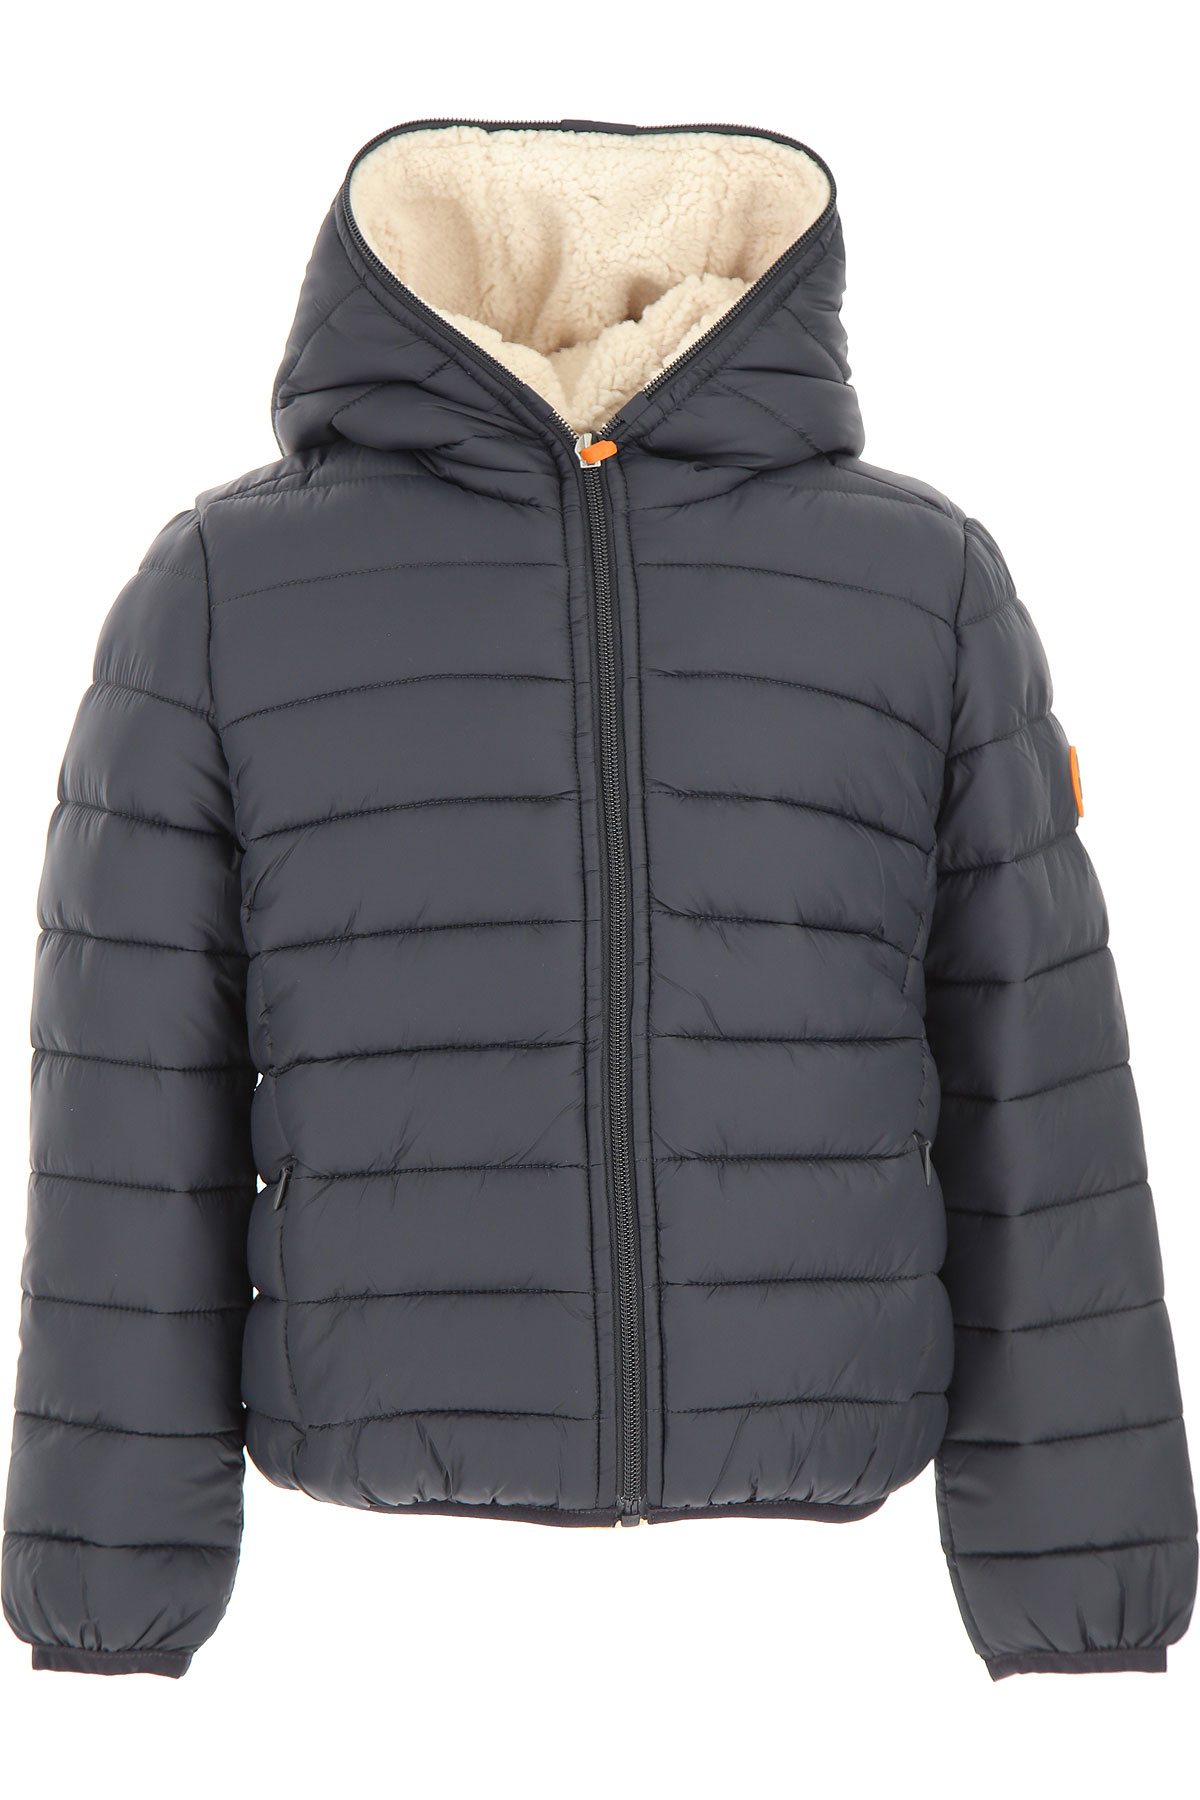 Save the Duck Boys Down Jacket for Kids, Puffer Ski Jacket On Sale, Shadow Black, Nylon, 2019, 2Y 4Y 6Y 8Y